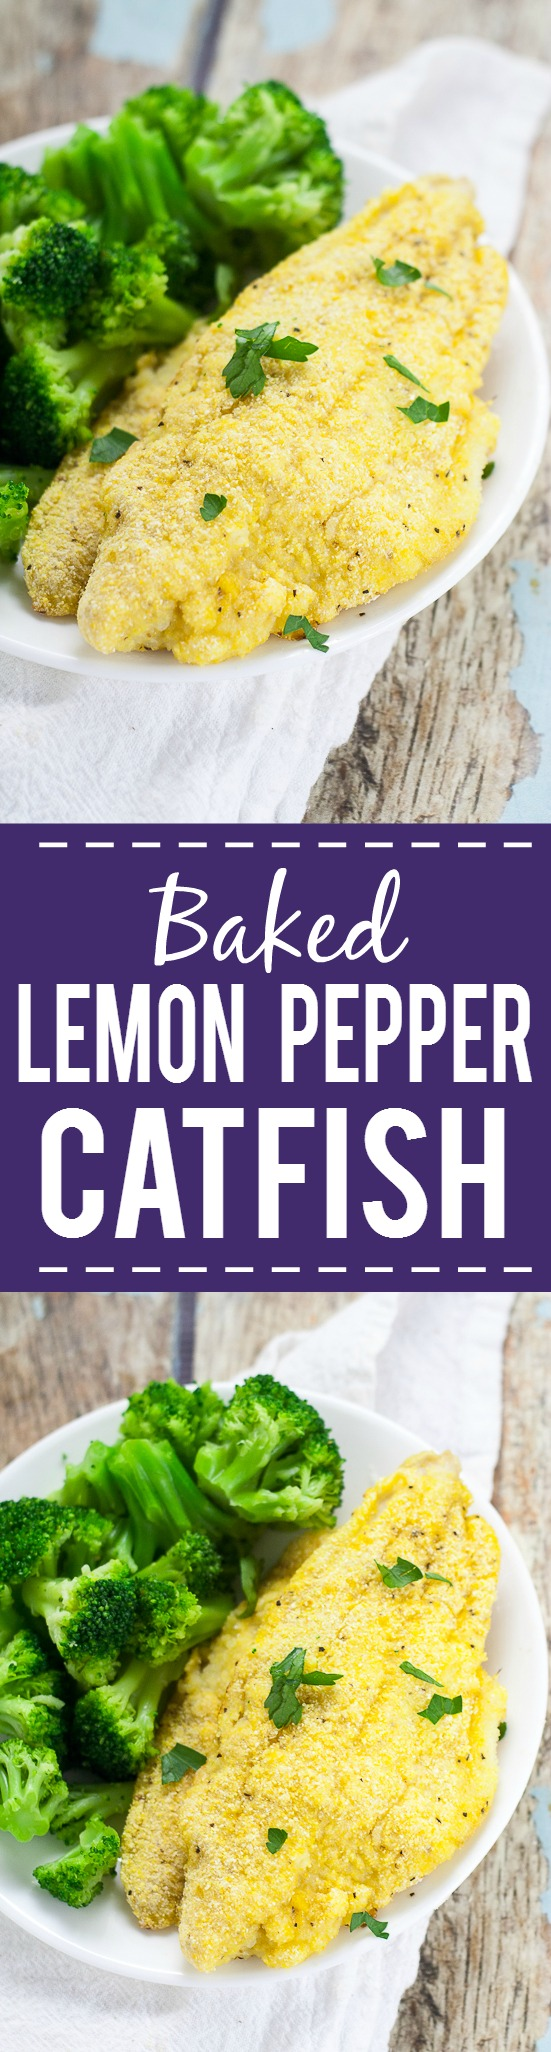 Lemon Pepper Baked Catfish Recipe - Crisp, zesty and baked right in the oven, this Lemon Pepper Baked Catfish recipe can be made in just 30 minutes with 5 ingredients! Quick and easy dinner recipe. Healthy too!